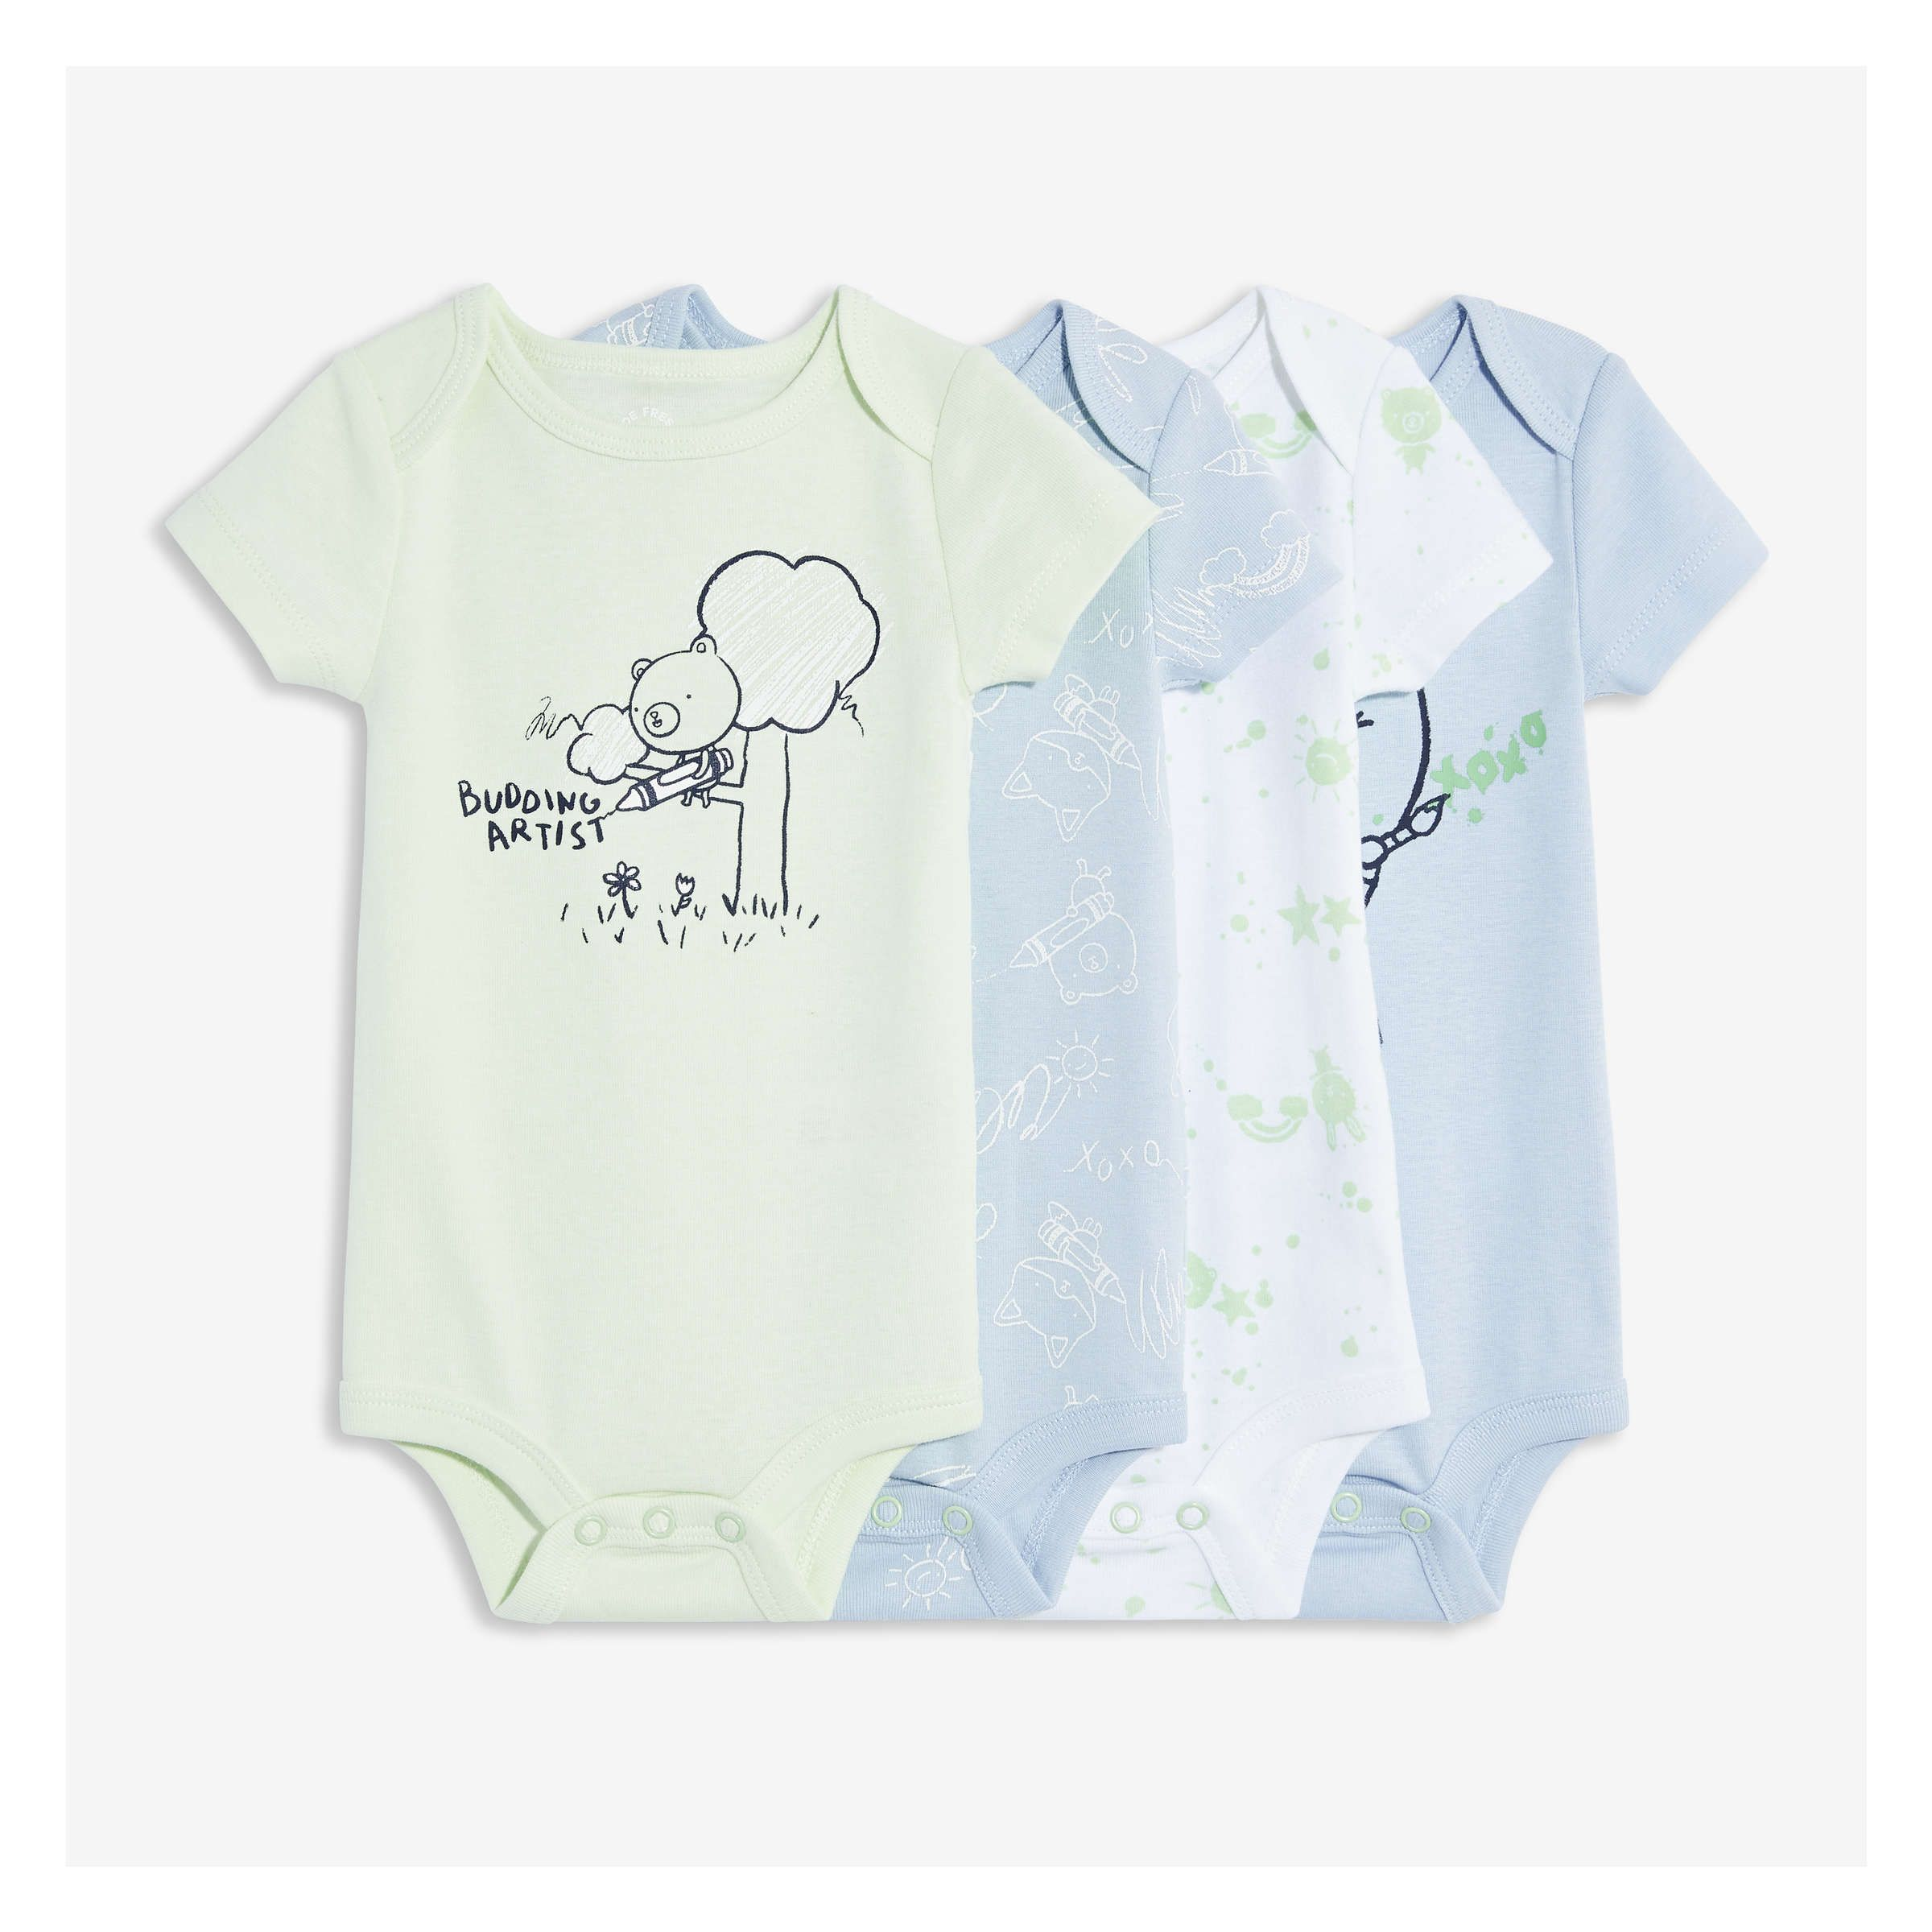 Faithful Toddler Newborn Baby Boy Girl Summer Bodysuit T-shirt Tops+pants 2pcs Outfit Clothes Size 0-24m Clothing Sets Girls' Baby Clothing